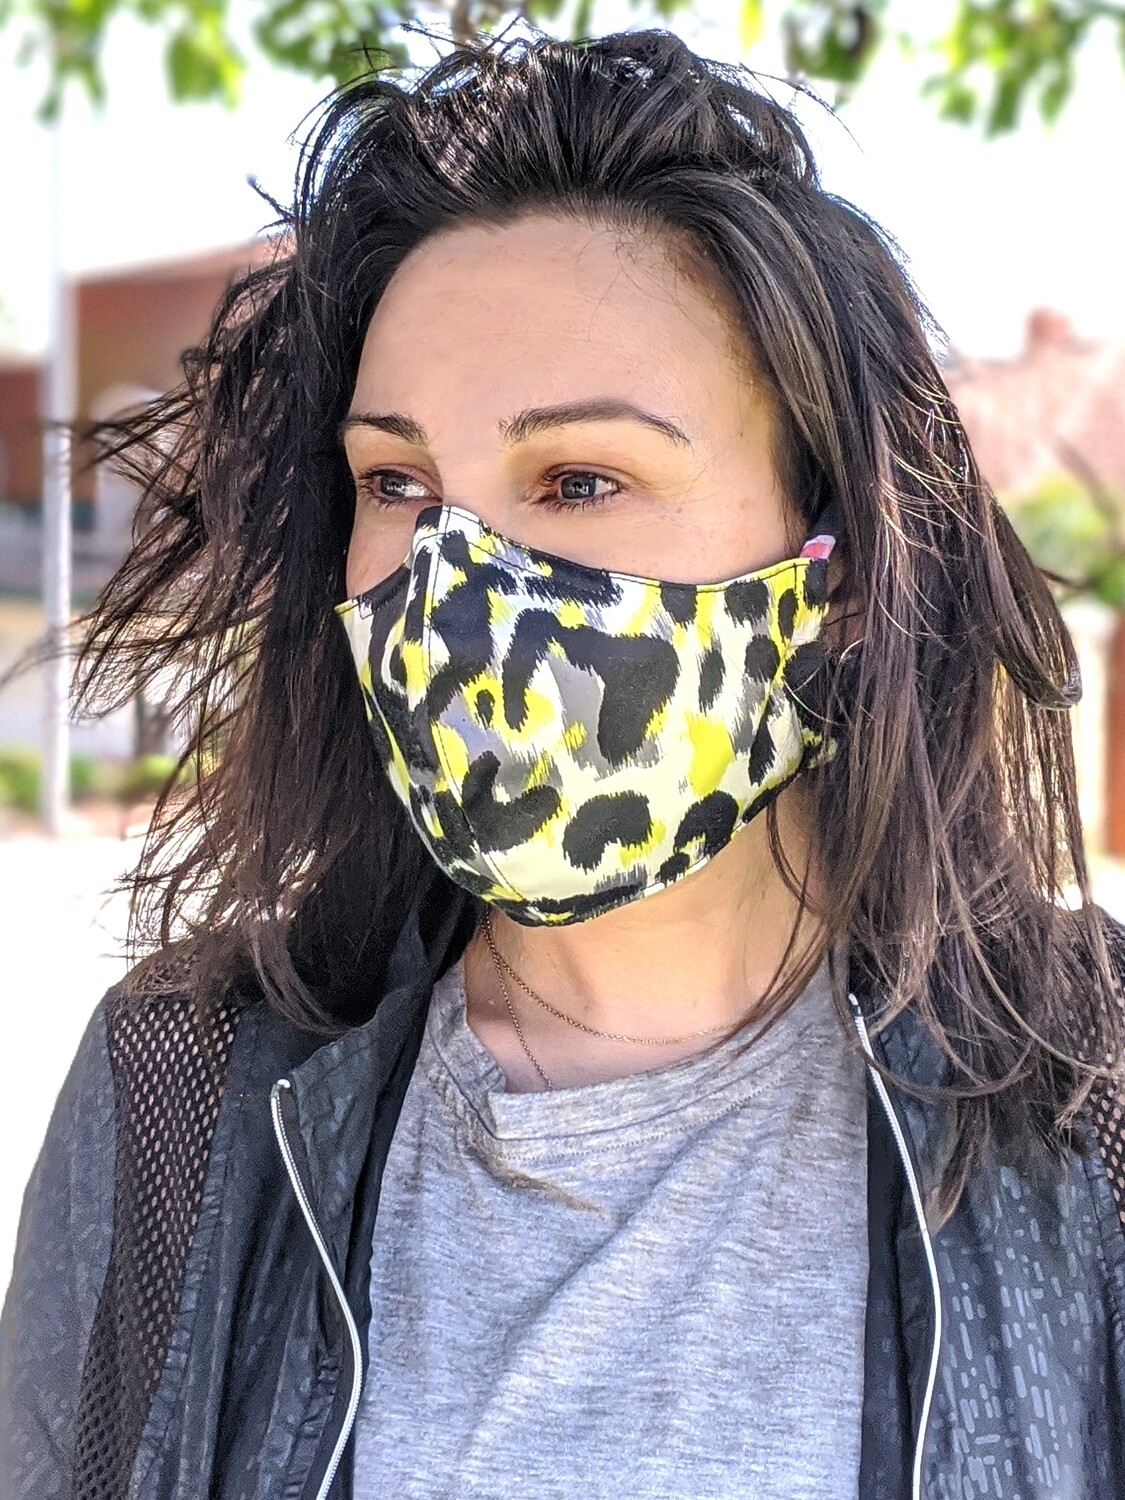 Pack of Neon Yellow Animal, Leopard Print Face Masks, Unisex, Washable, Reusable, Double Layer for Smog, Pollen, Dust, Smoke. HEADBAND